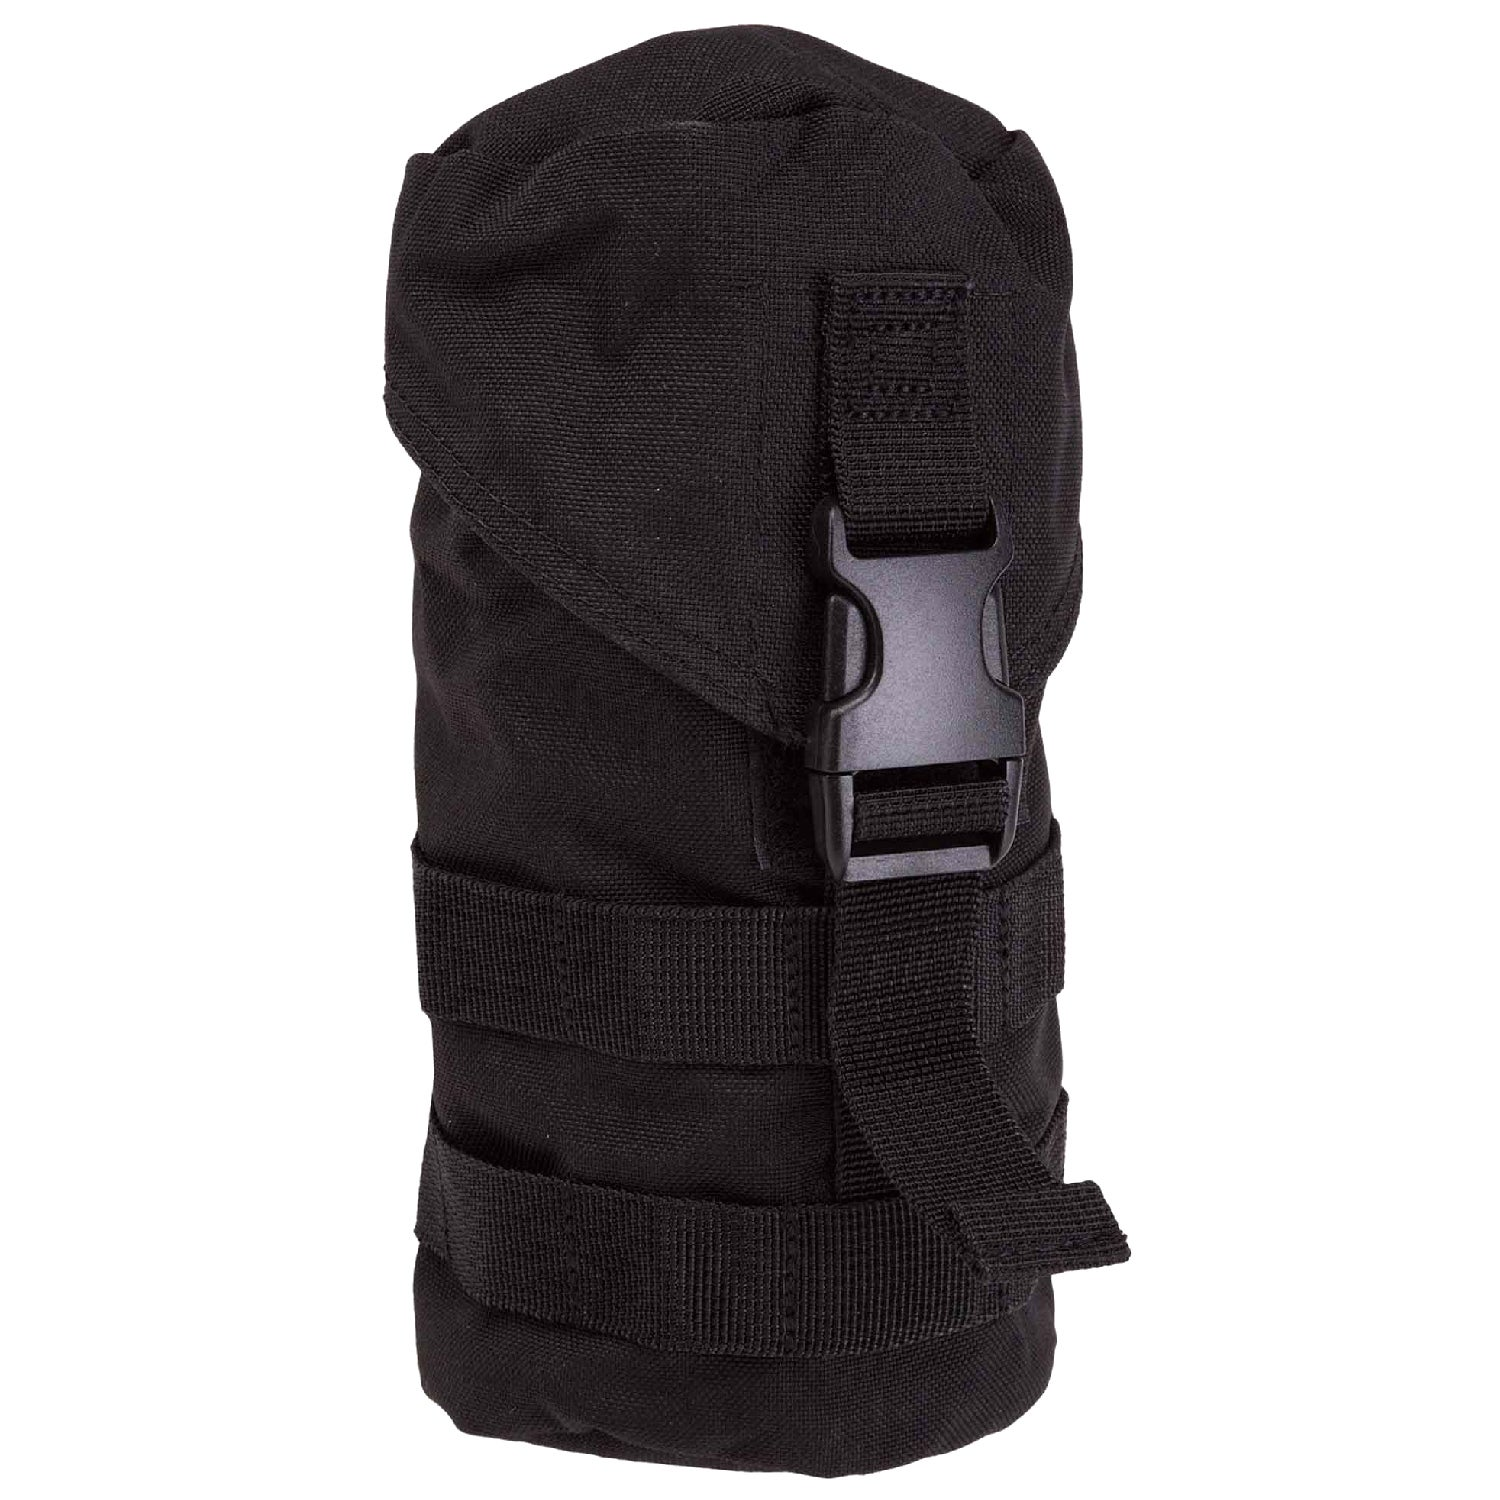 5.11 Tactical H2O Carrier Zasobnik hydracyjny